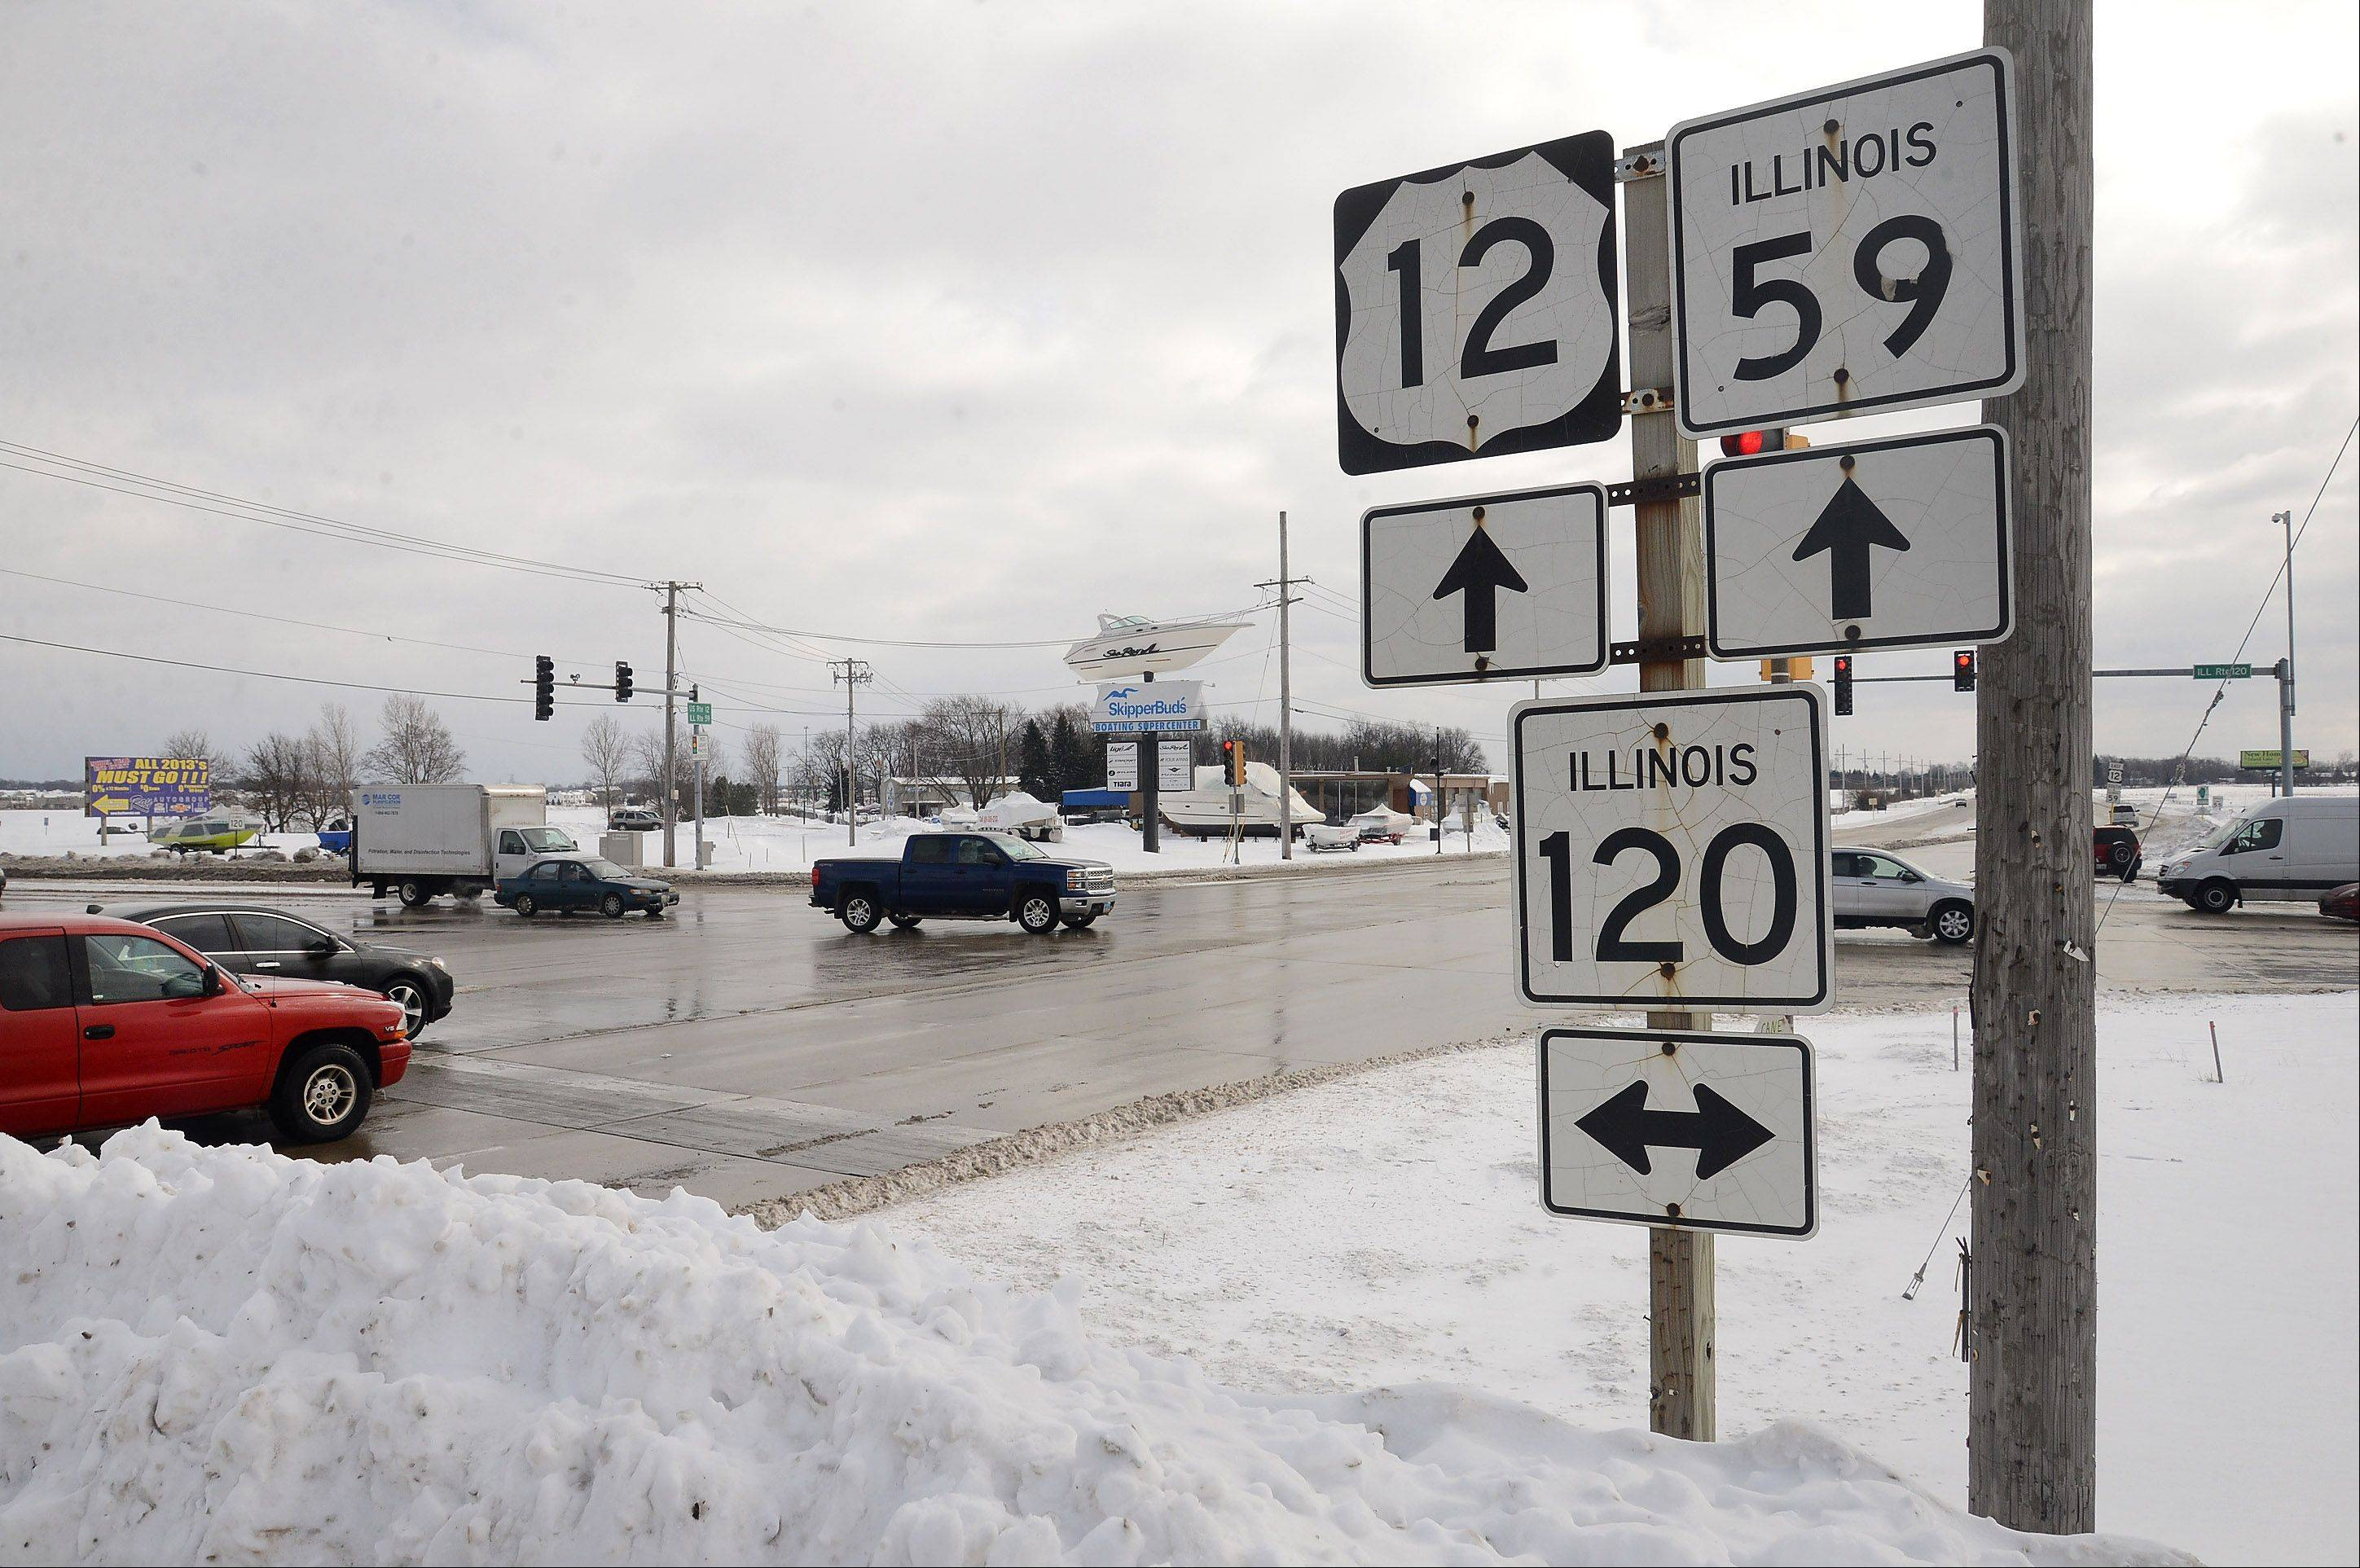 The intersection of routes 120 and 12/59 is the focus of a proposed study.